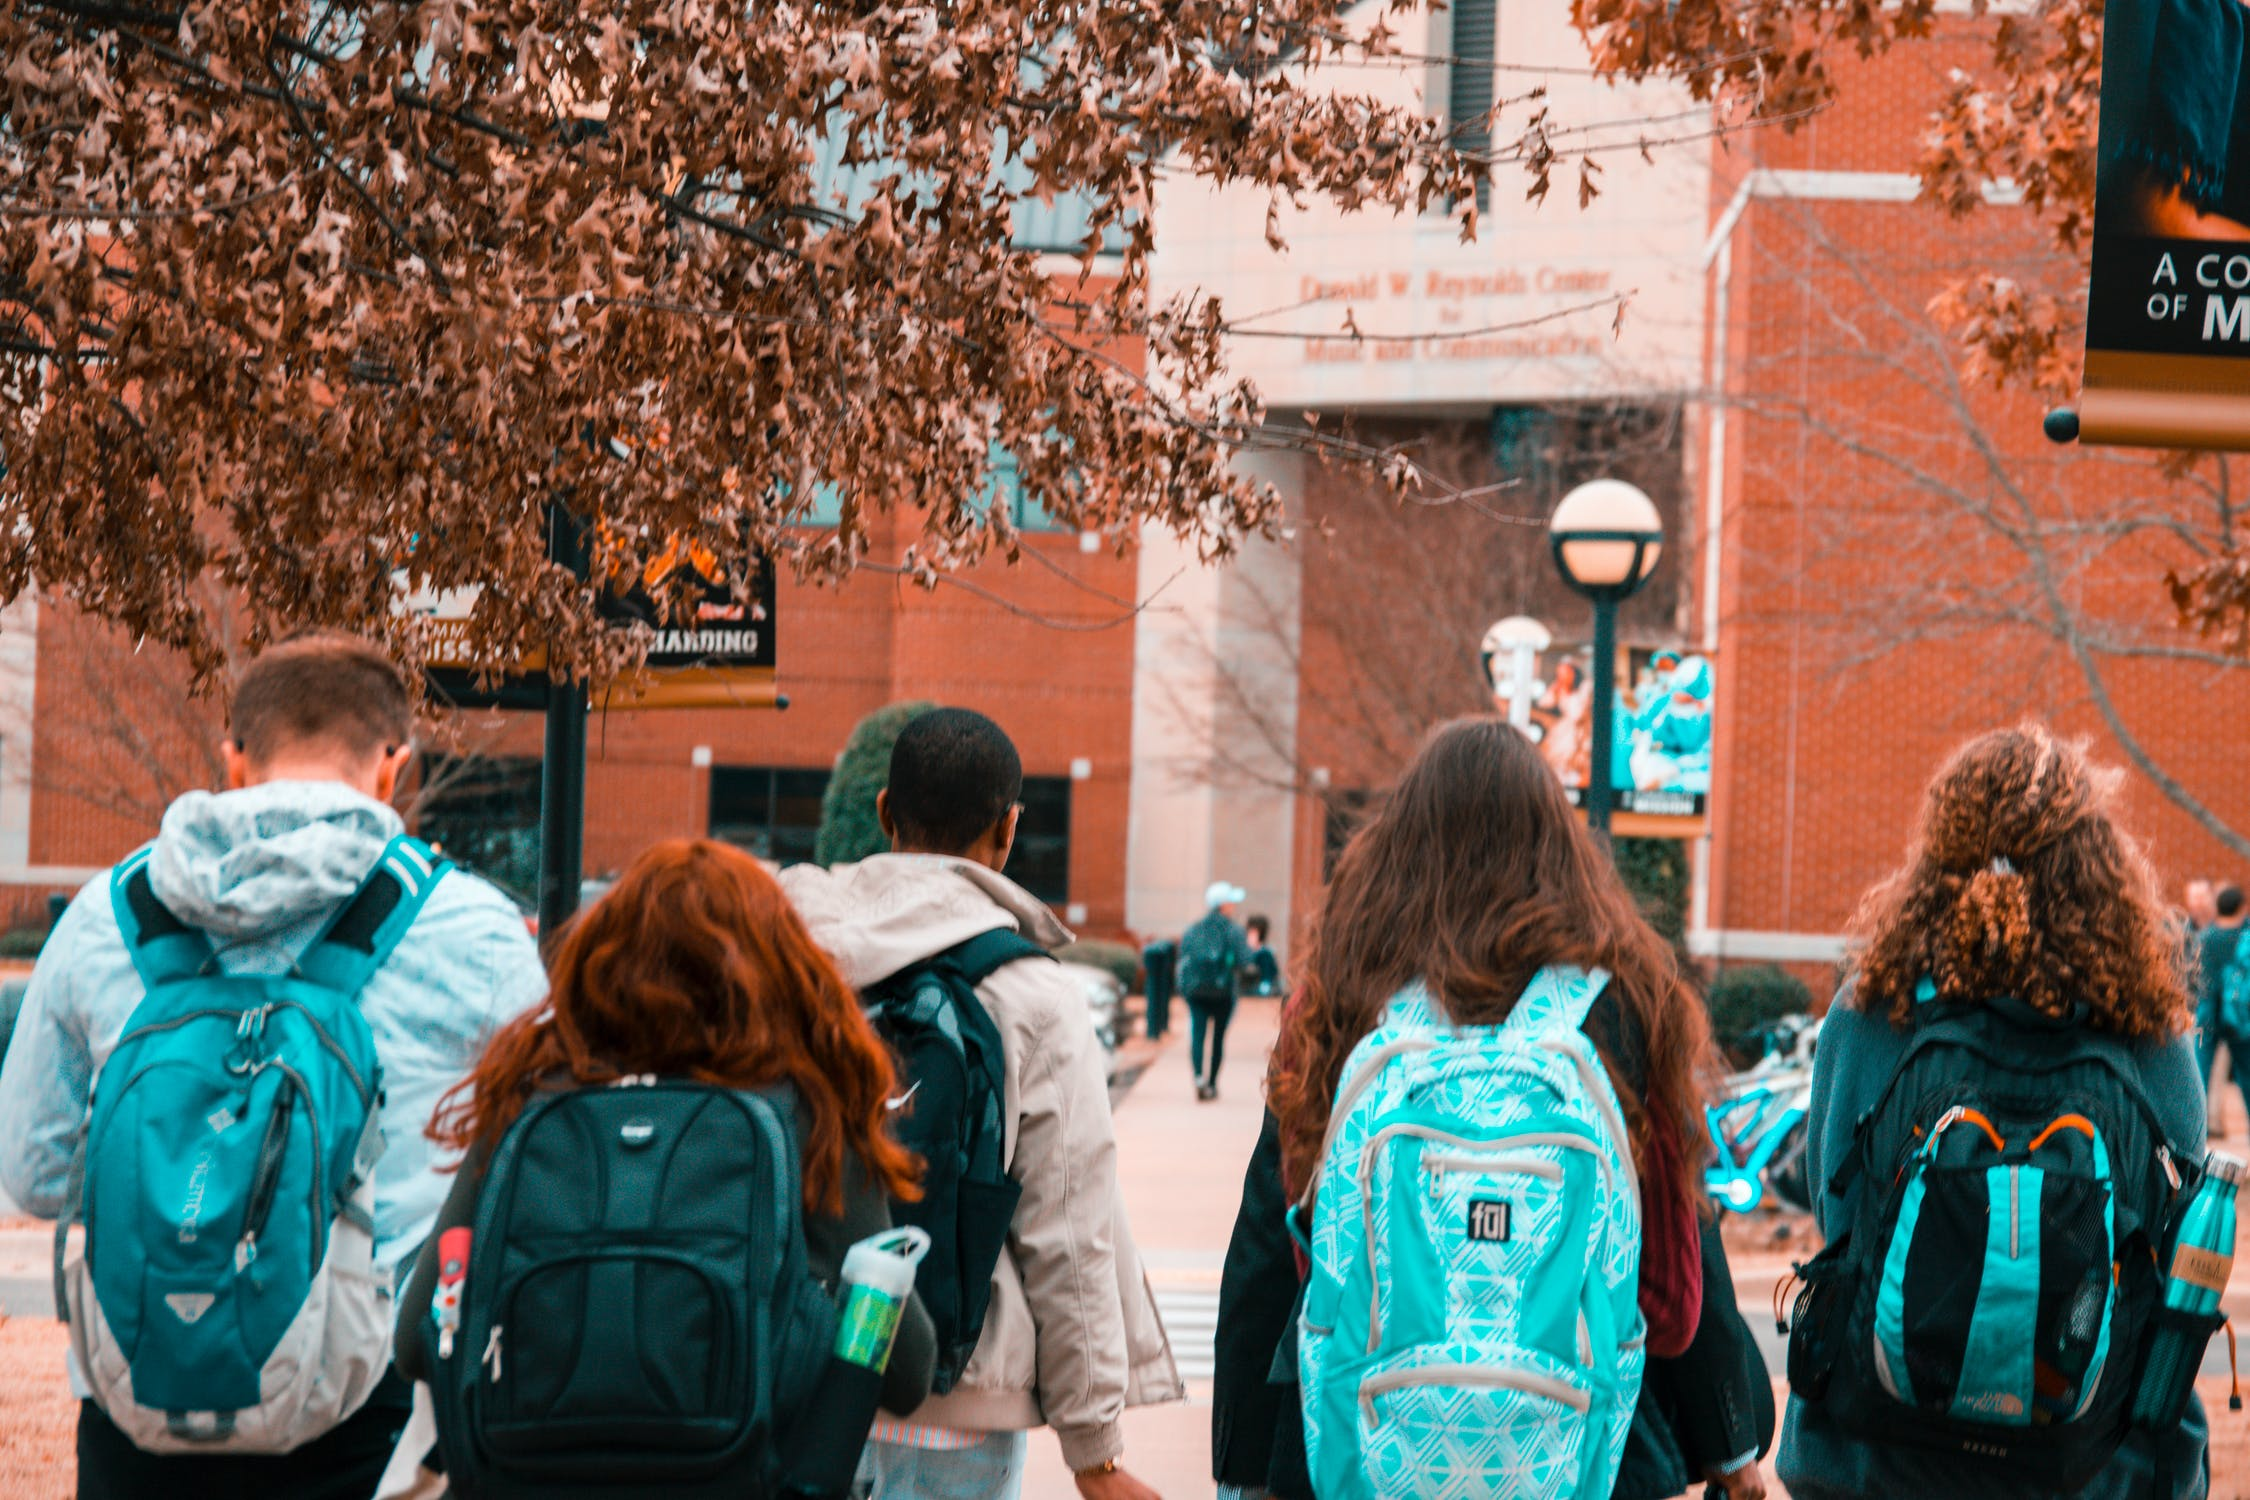 College students with backpacks walking on campus away from the camera. Photo by pexels user Stanley Morales. Used Courtesy of pexels.com.